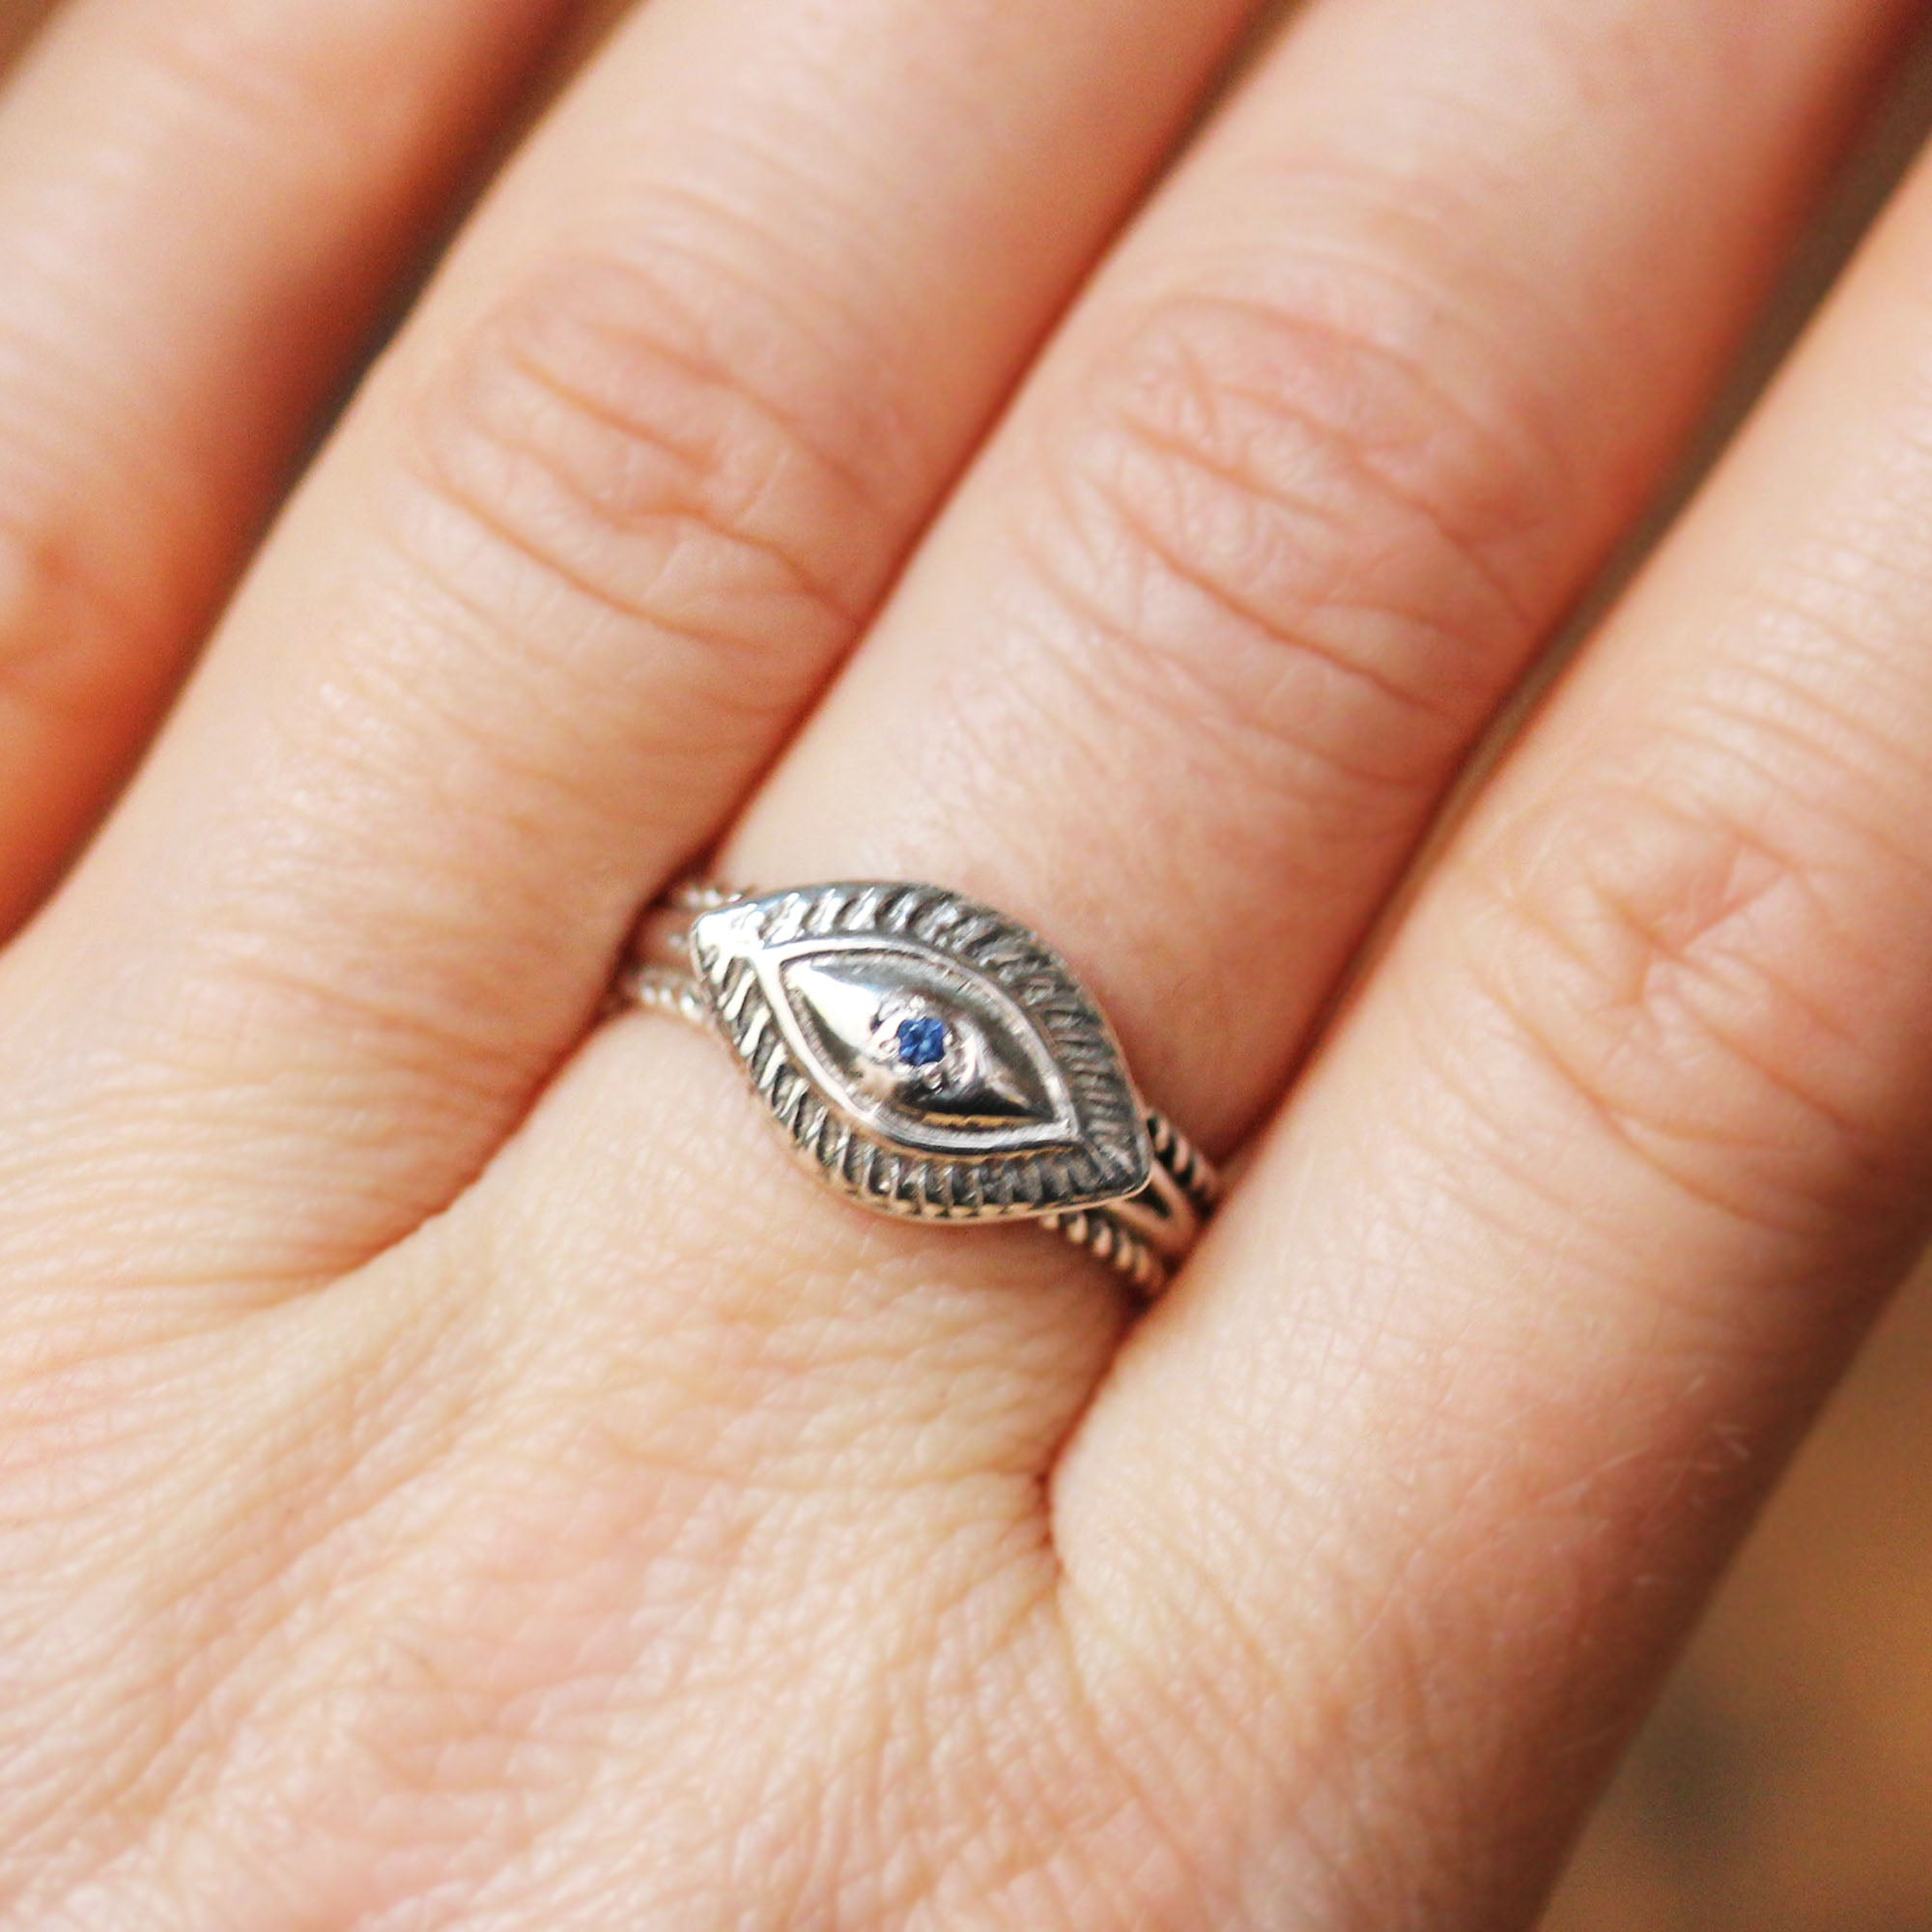 Protective Eye Ring with Sapphire, sterling silver